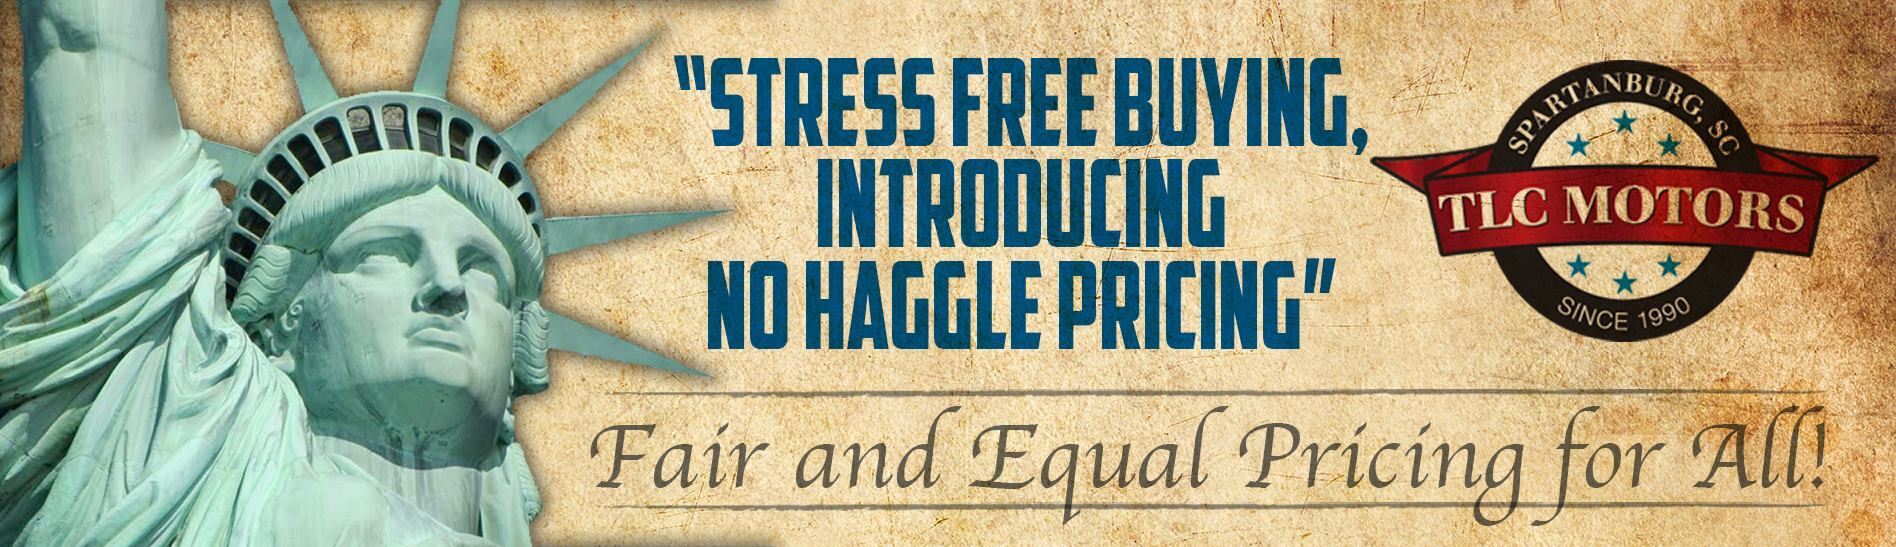 Fair and Equal Pricing For All